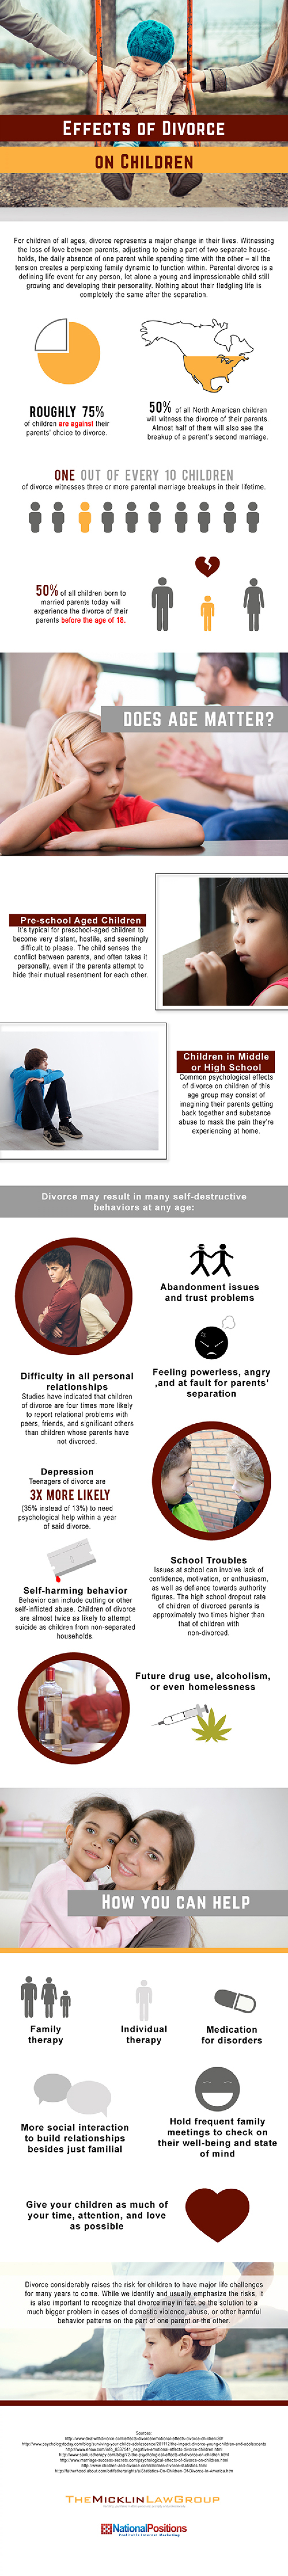 Effects of Divorce on Children | Visual ly